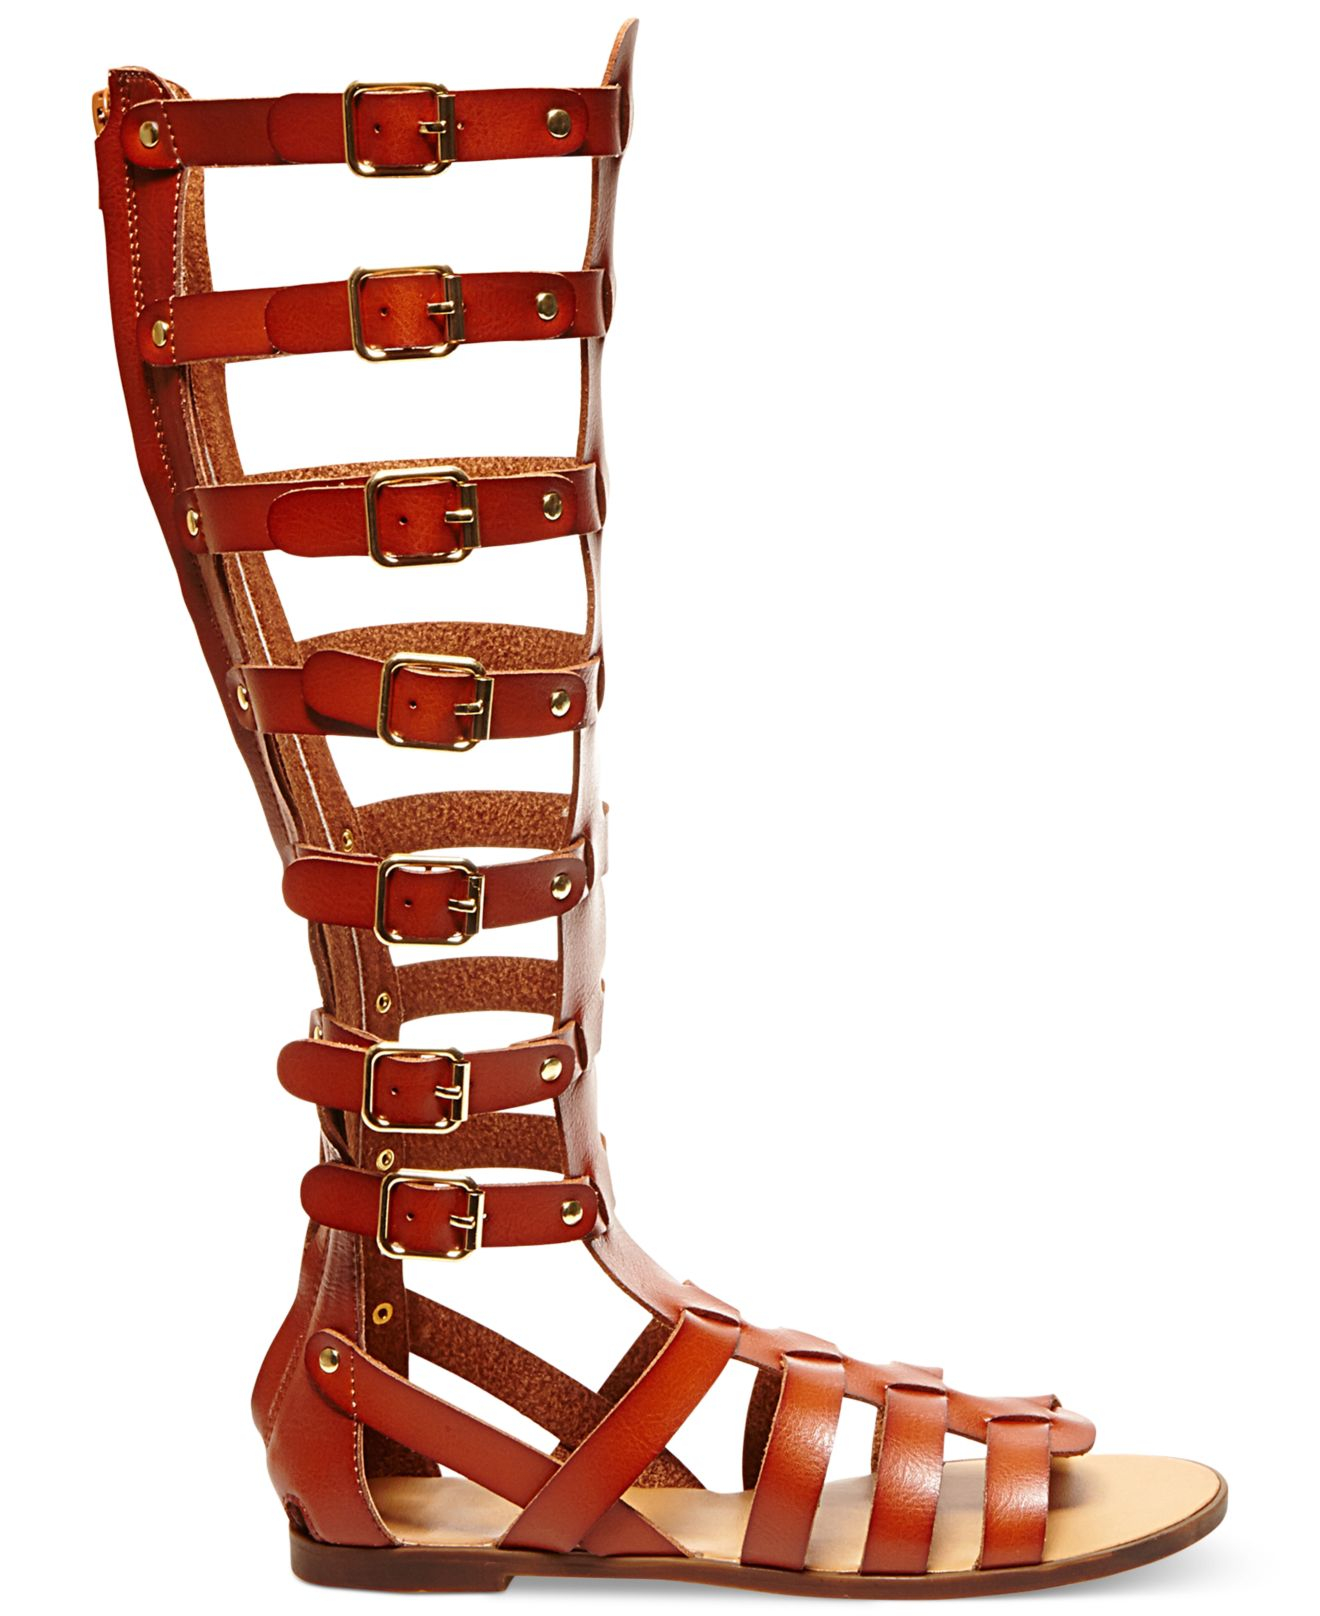 49f303ed2de Gallery. Previously sold at  Macy s · Women s Gladiator Sandals ...